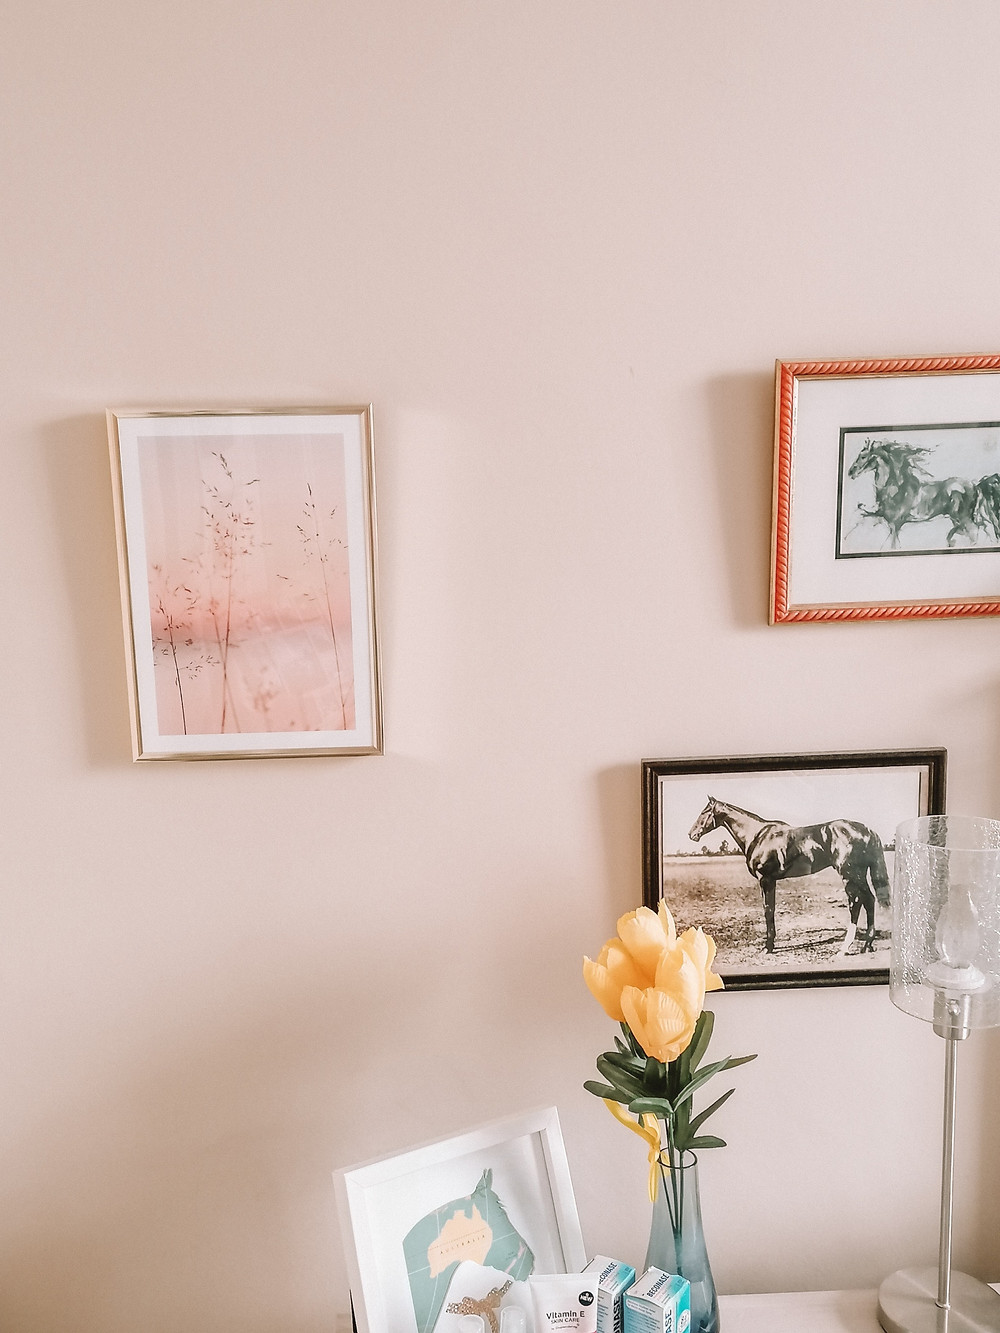 photo shows a wall with an orange sunset picture in a frame